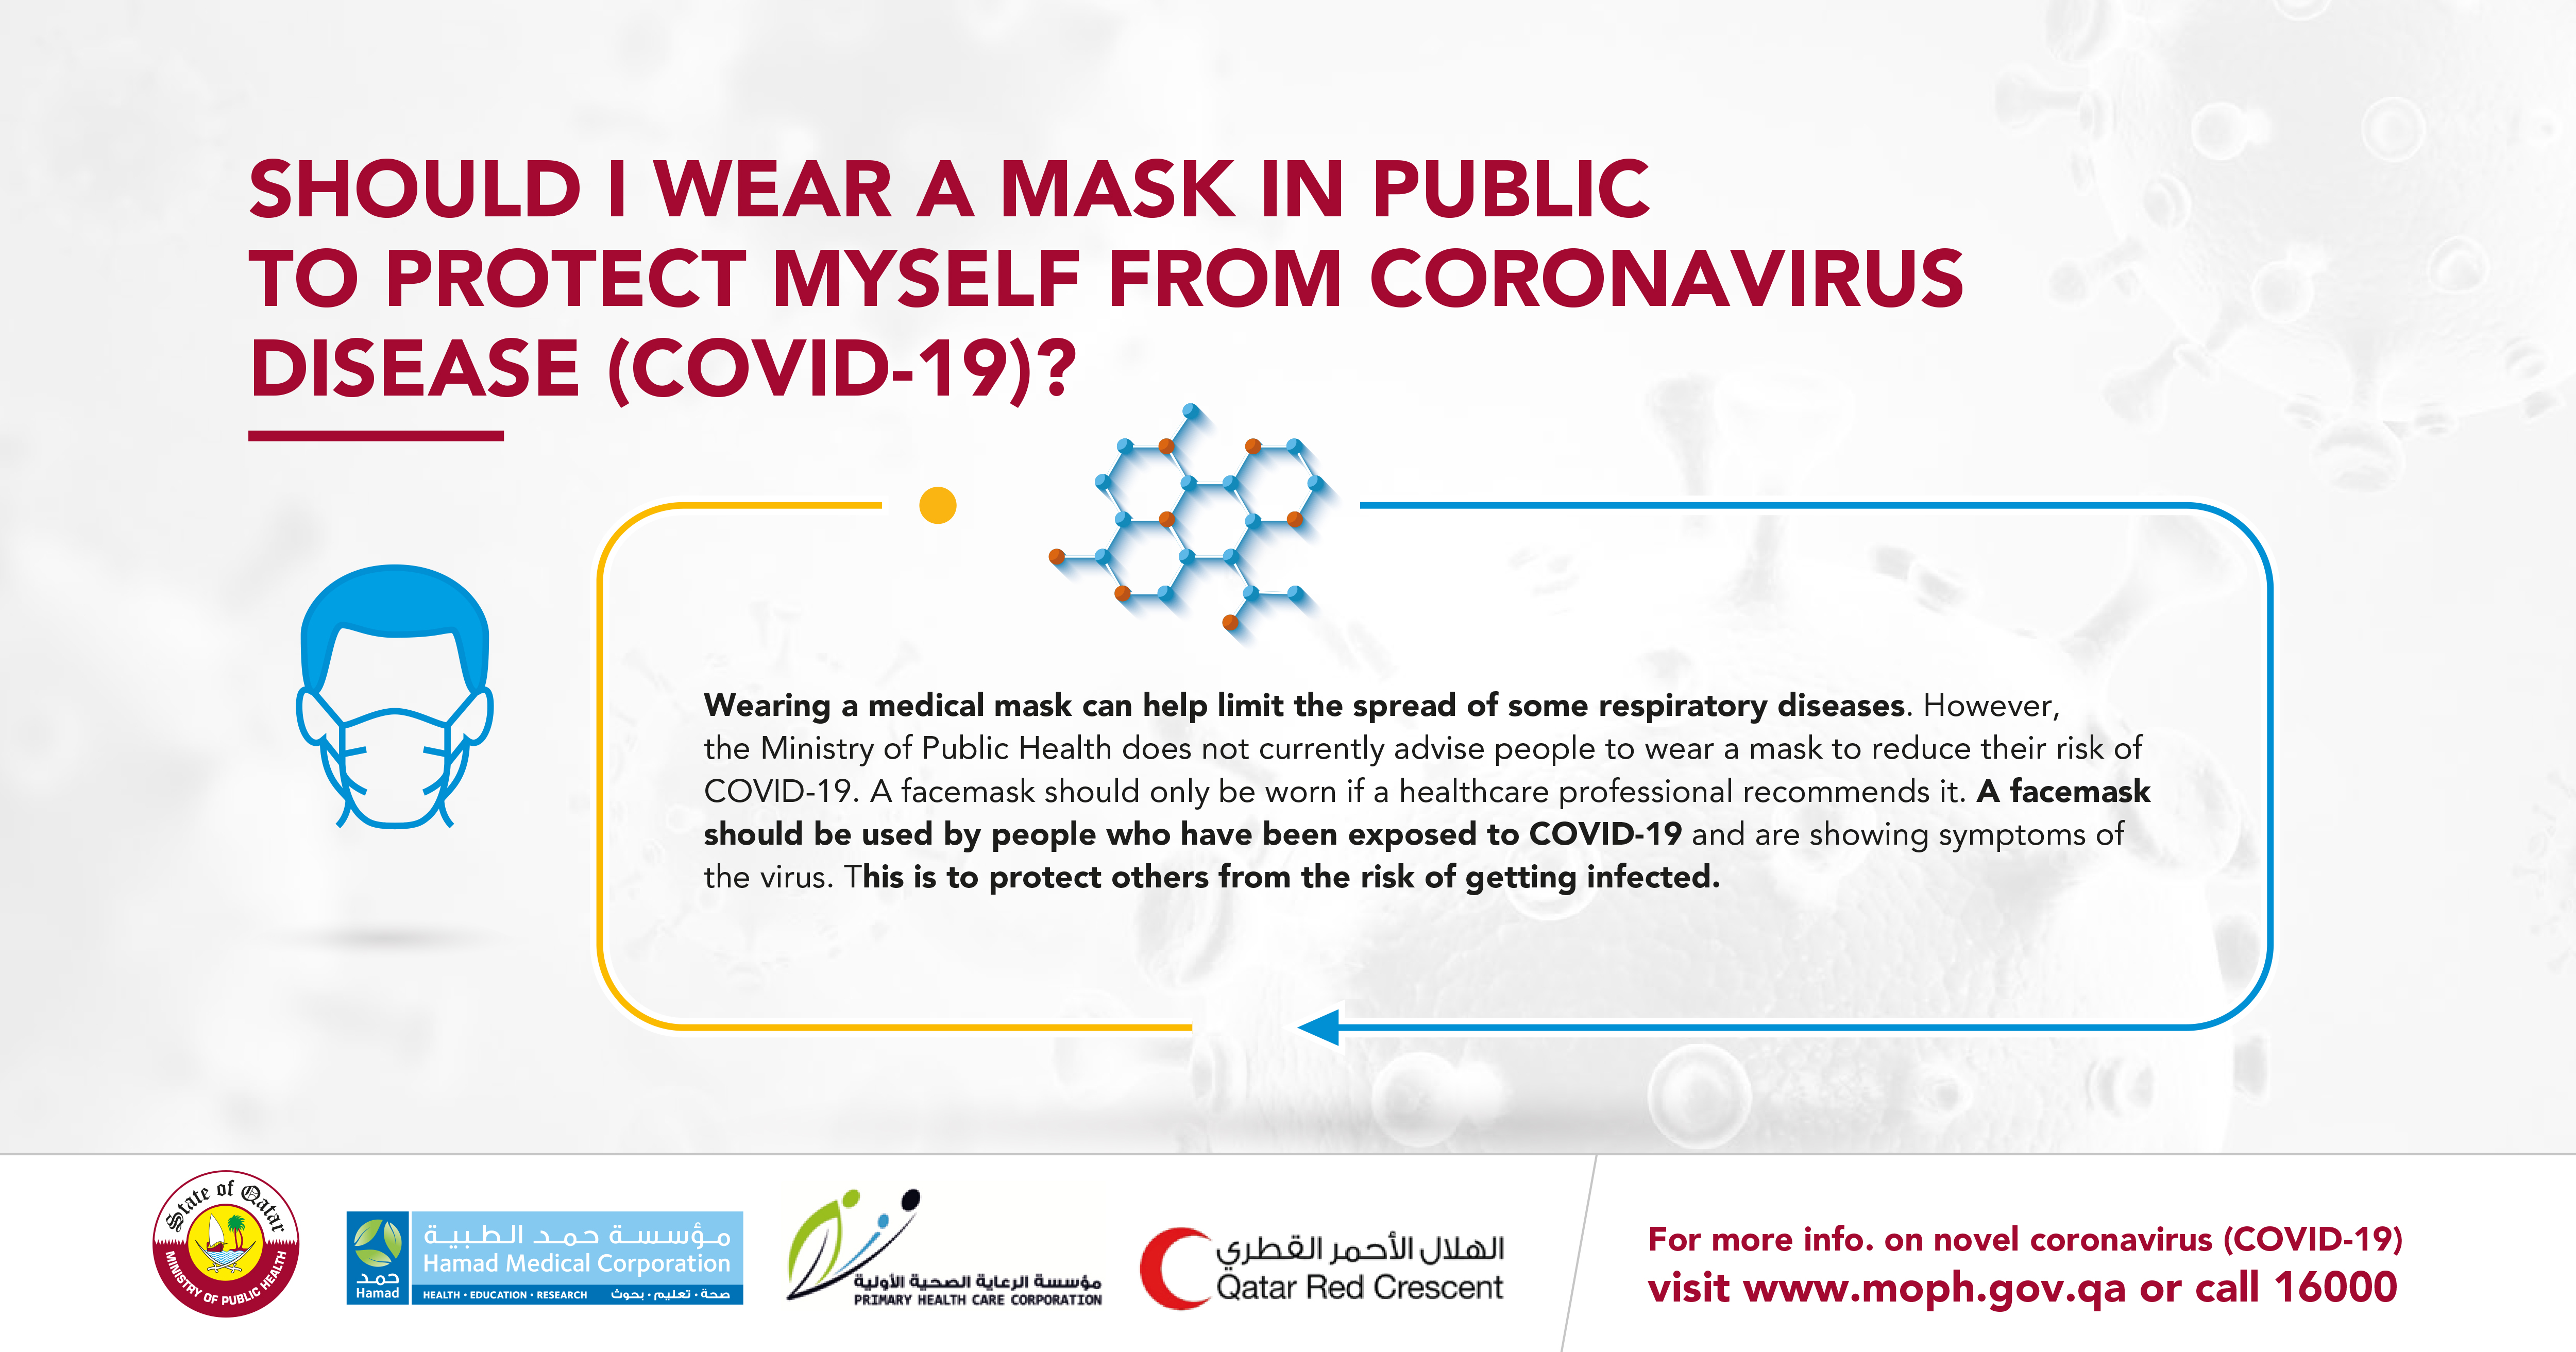 Should I Wear a Mask in Public to Protect Myself from (COVID-19)